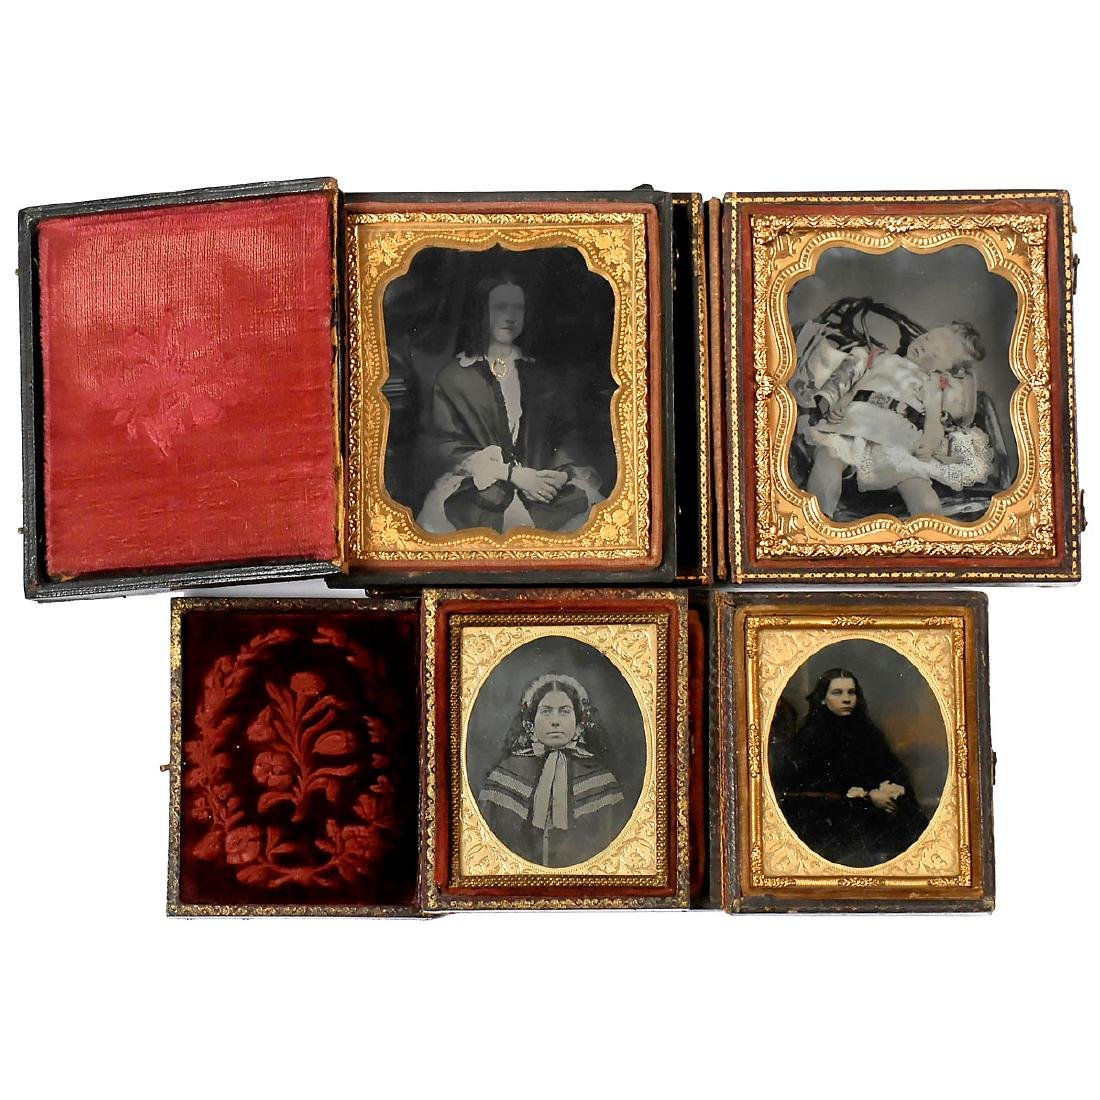 4 Hand-Tinted Ambrotypes, c. 1850